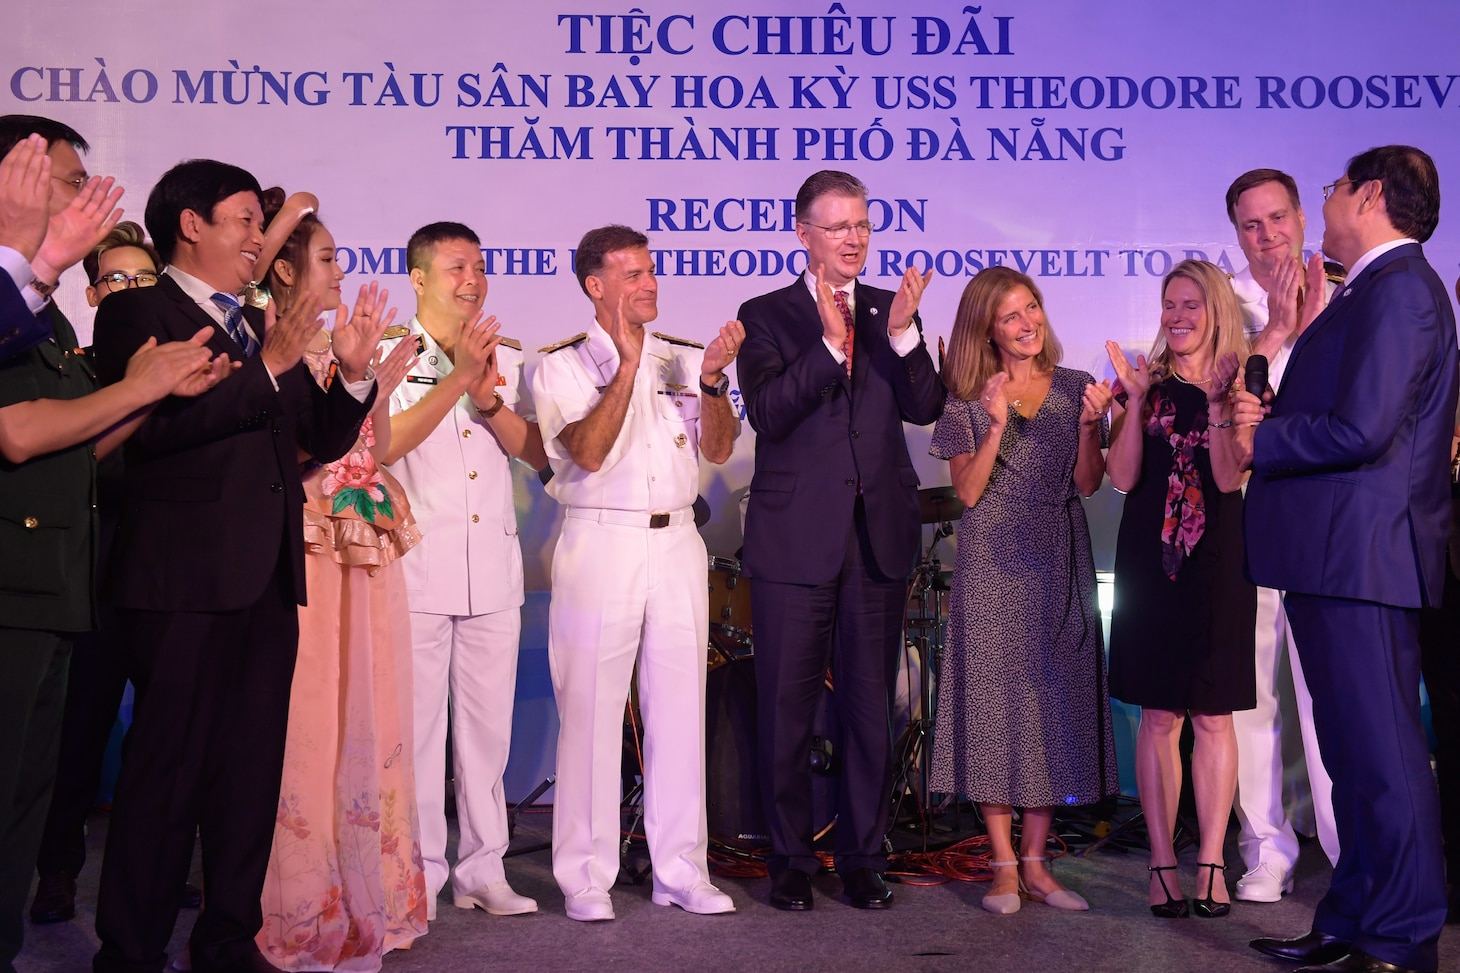 200305-N-YQ383-1154 VIETNAM (March 5, 2020) American and Vietnamese dignitaries celebrate at a reception welcoming the aircraft carrier USS Theodore Roosevelt (CVN 71) and the Ticonderoga-class guided-missile cruiser USS Bunker Hill (CG 52) to Da Nang, Vietnam, March 5, 2020. Theodore Roosevelt and Bunker Hill are in Vietnam for a port visit during their scheduled deployment to the Indo-Pacific.